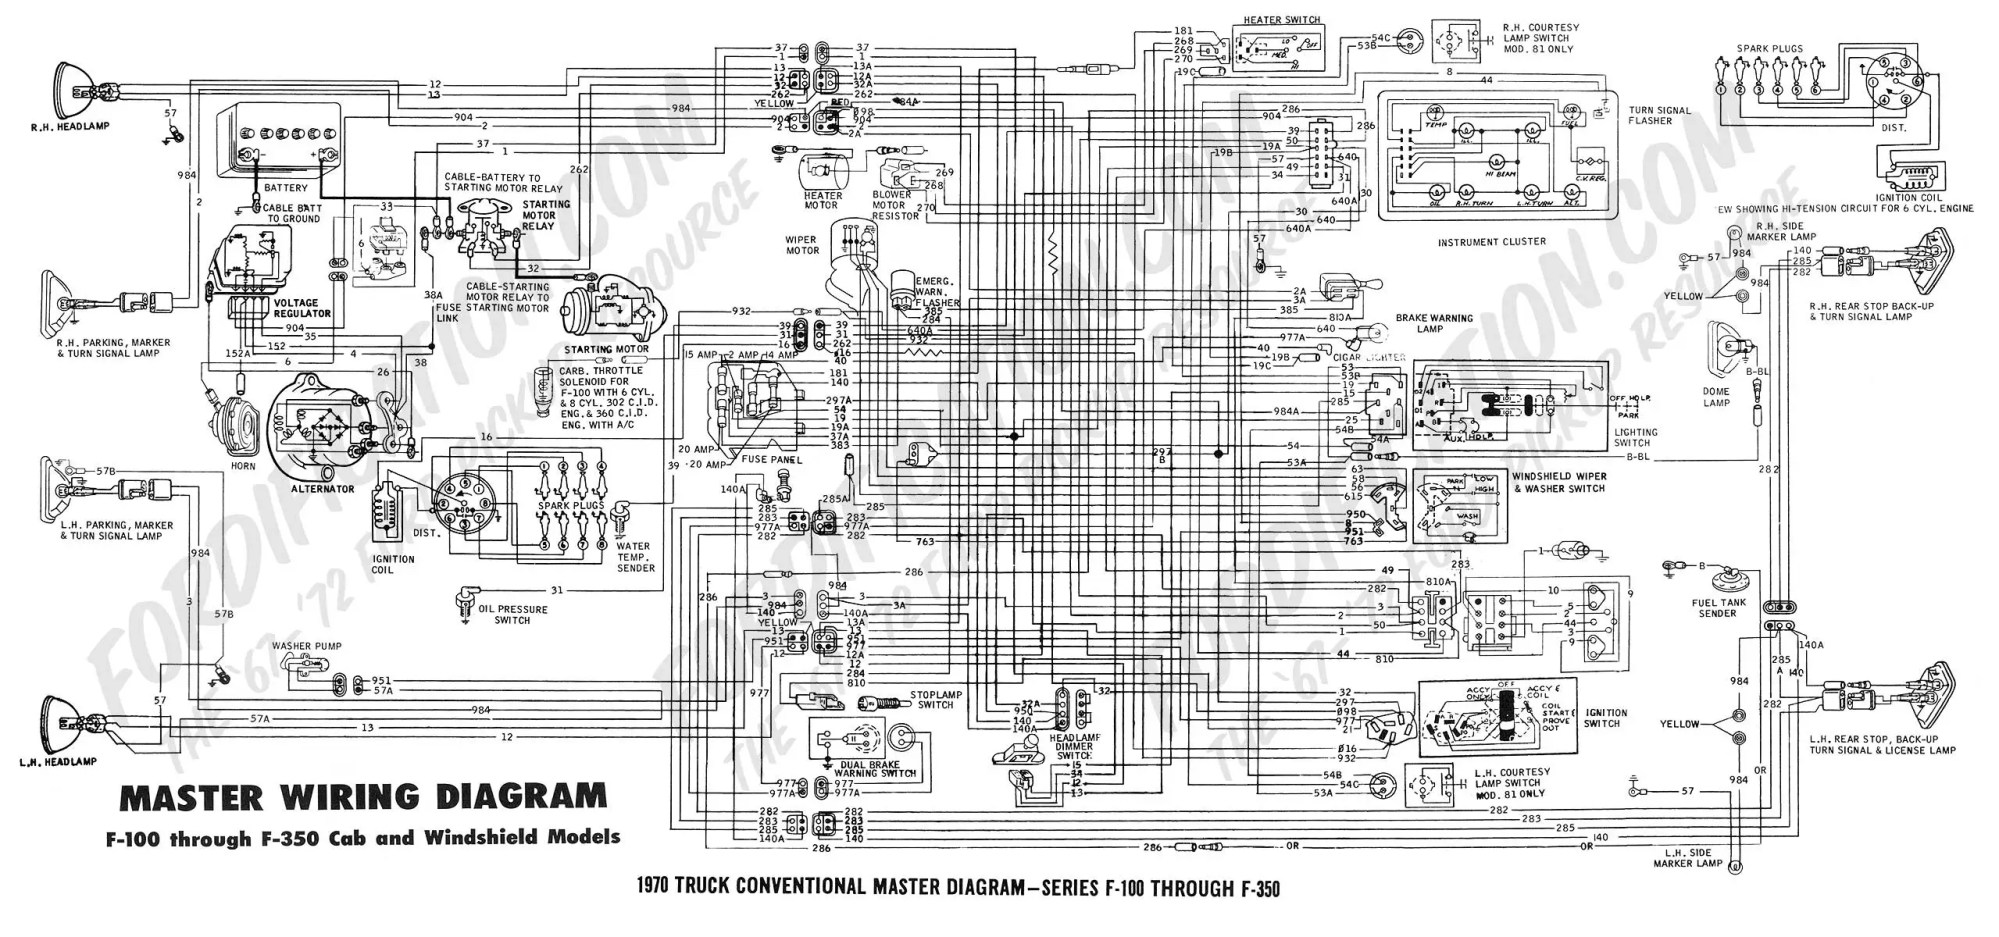 hight resolution of 99 ford f 250 wiring diagrams wiring diagram forward 1999 ford f250 wiring diagram 99 ford f250 wiring diagram